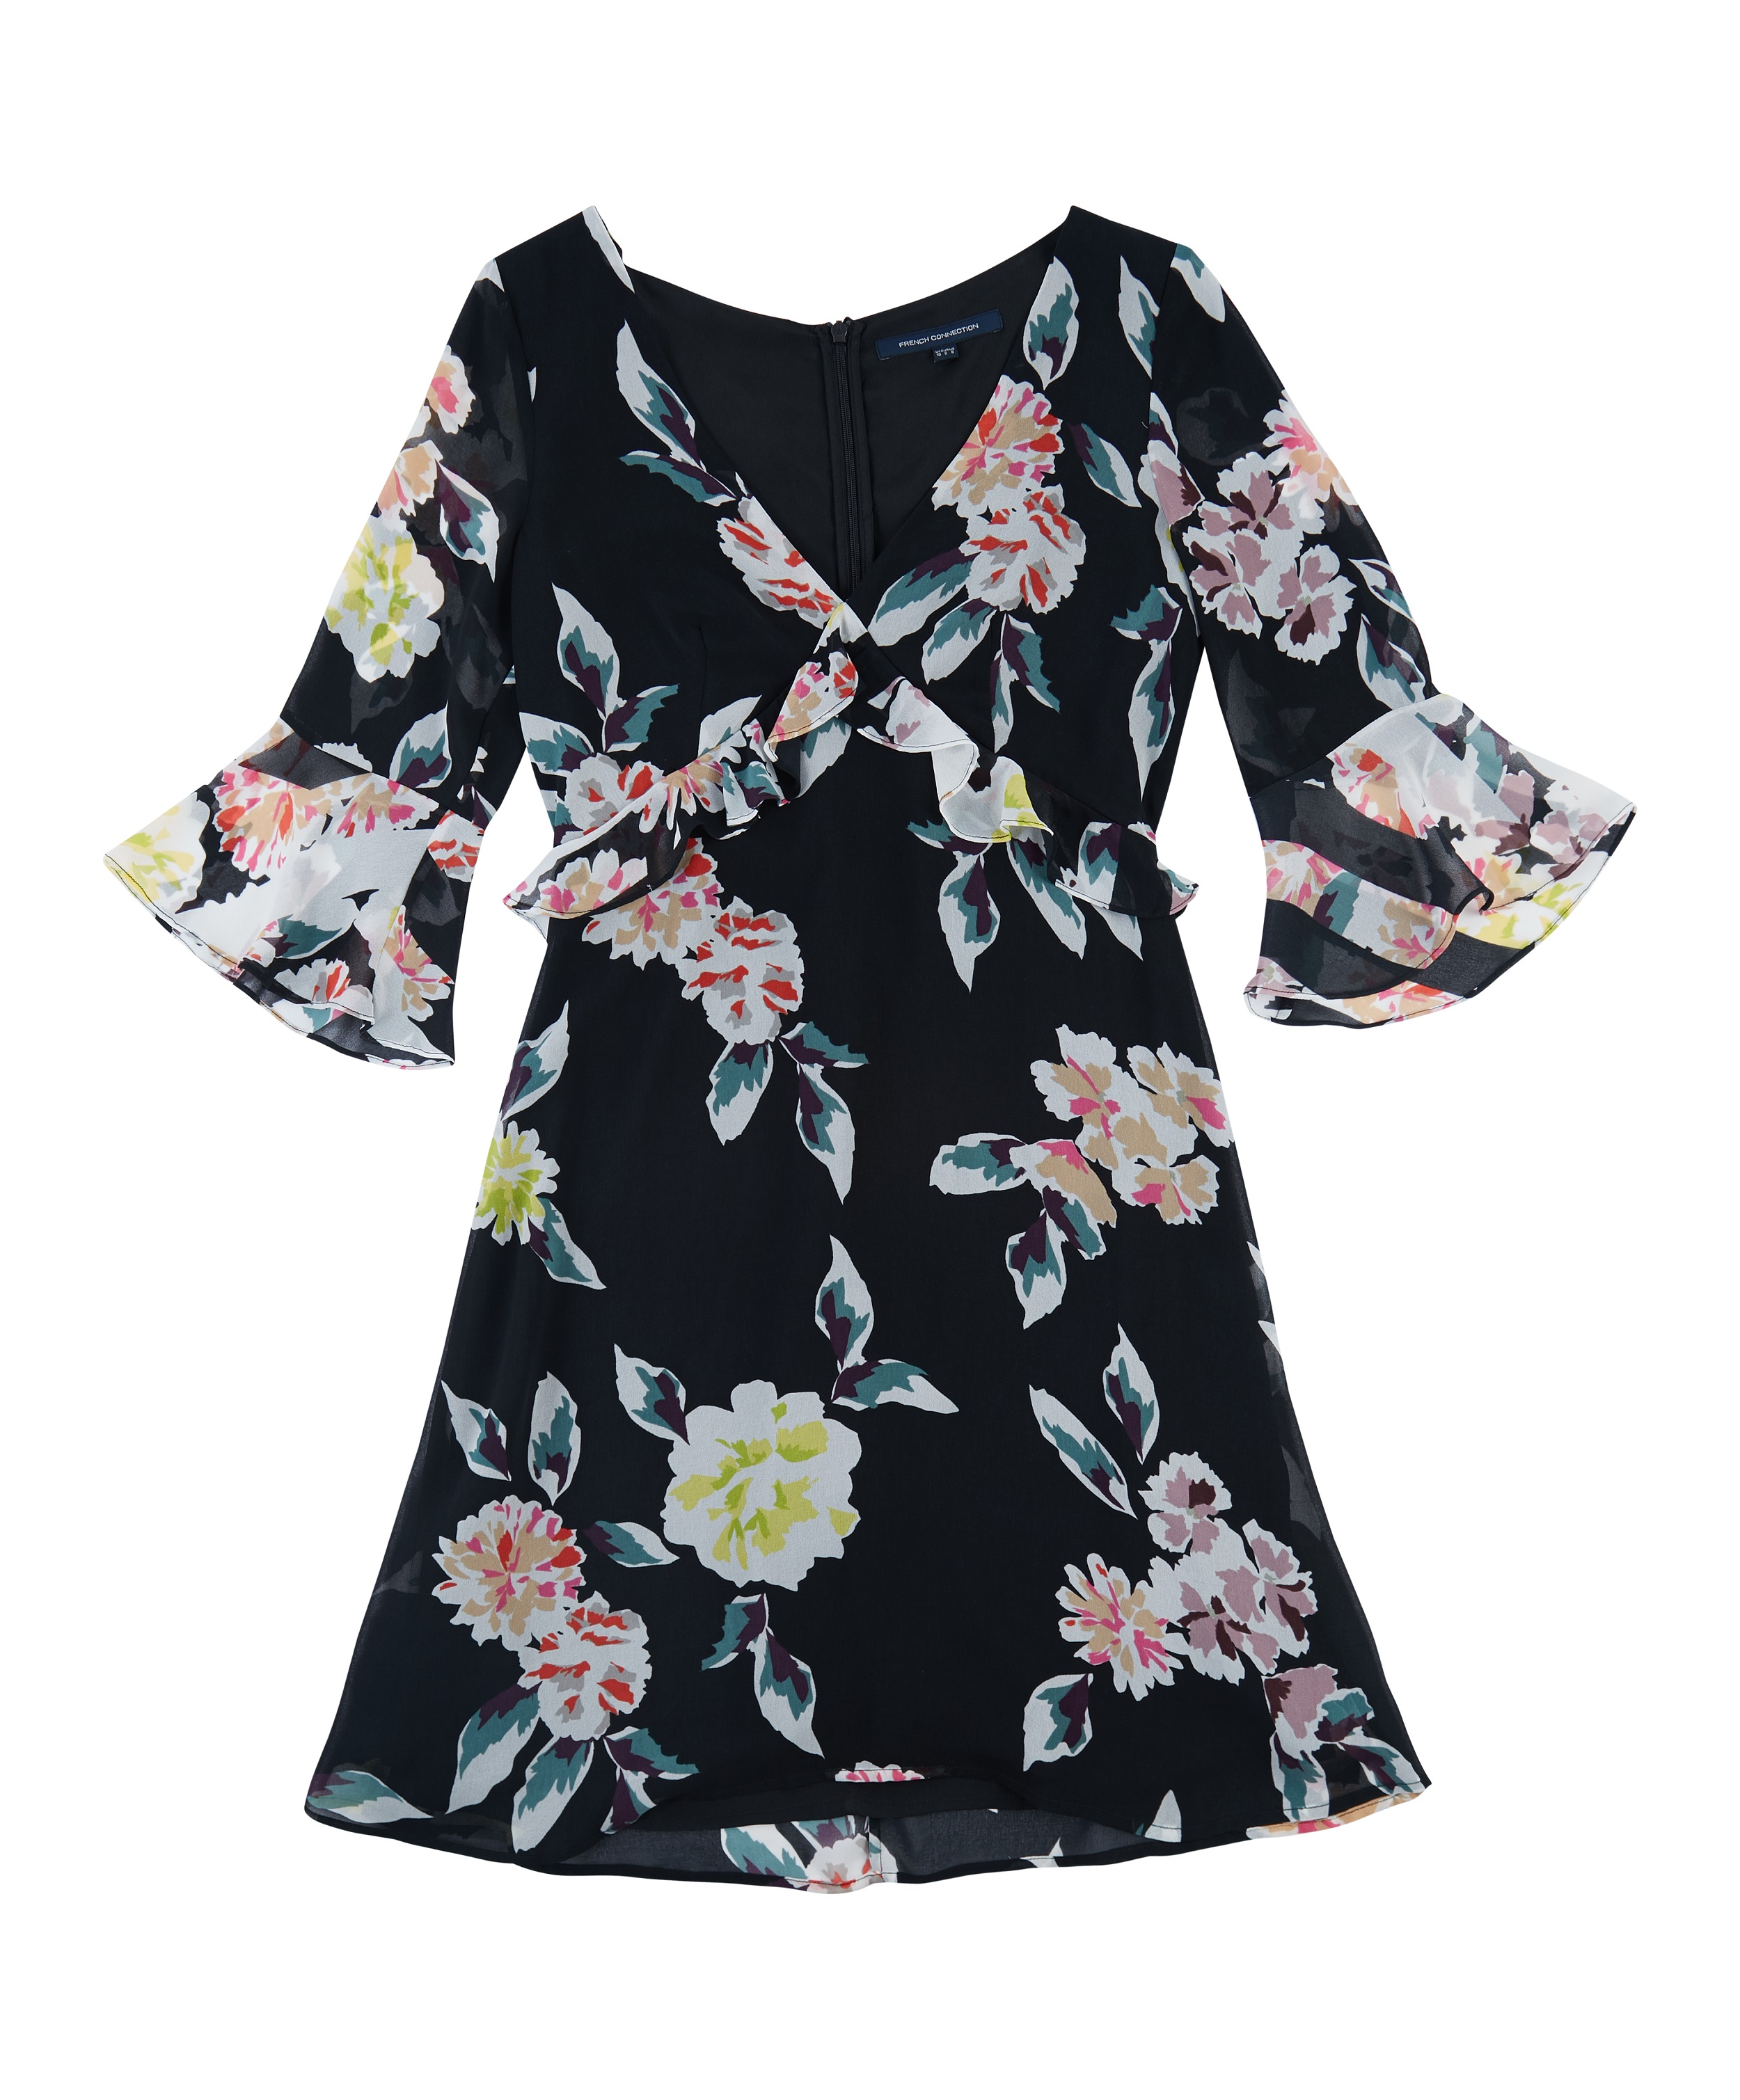 French Connection_Black floral_INR 8999